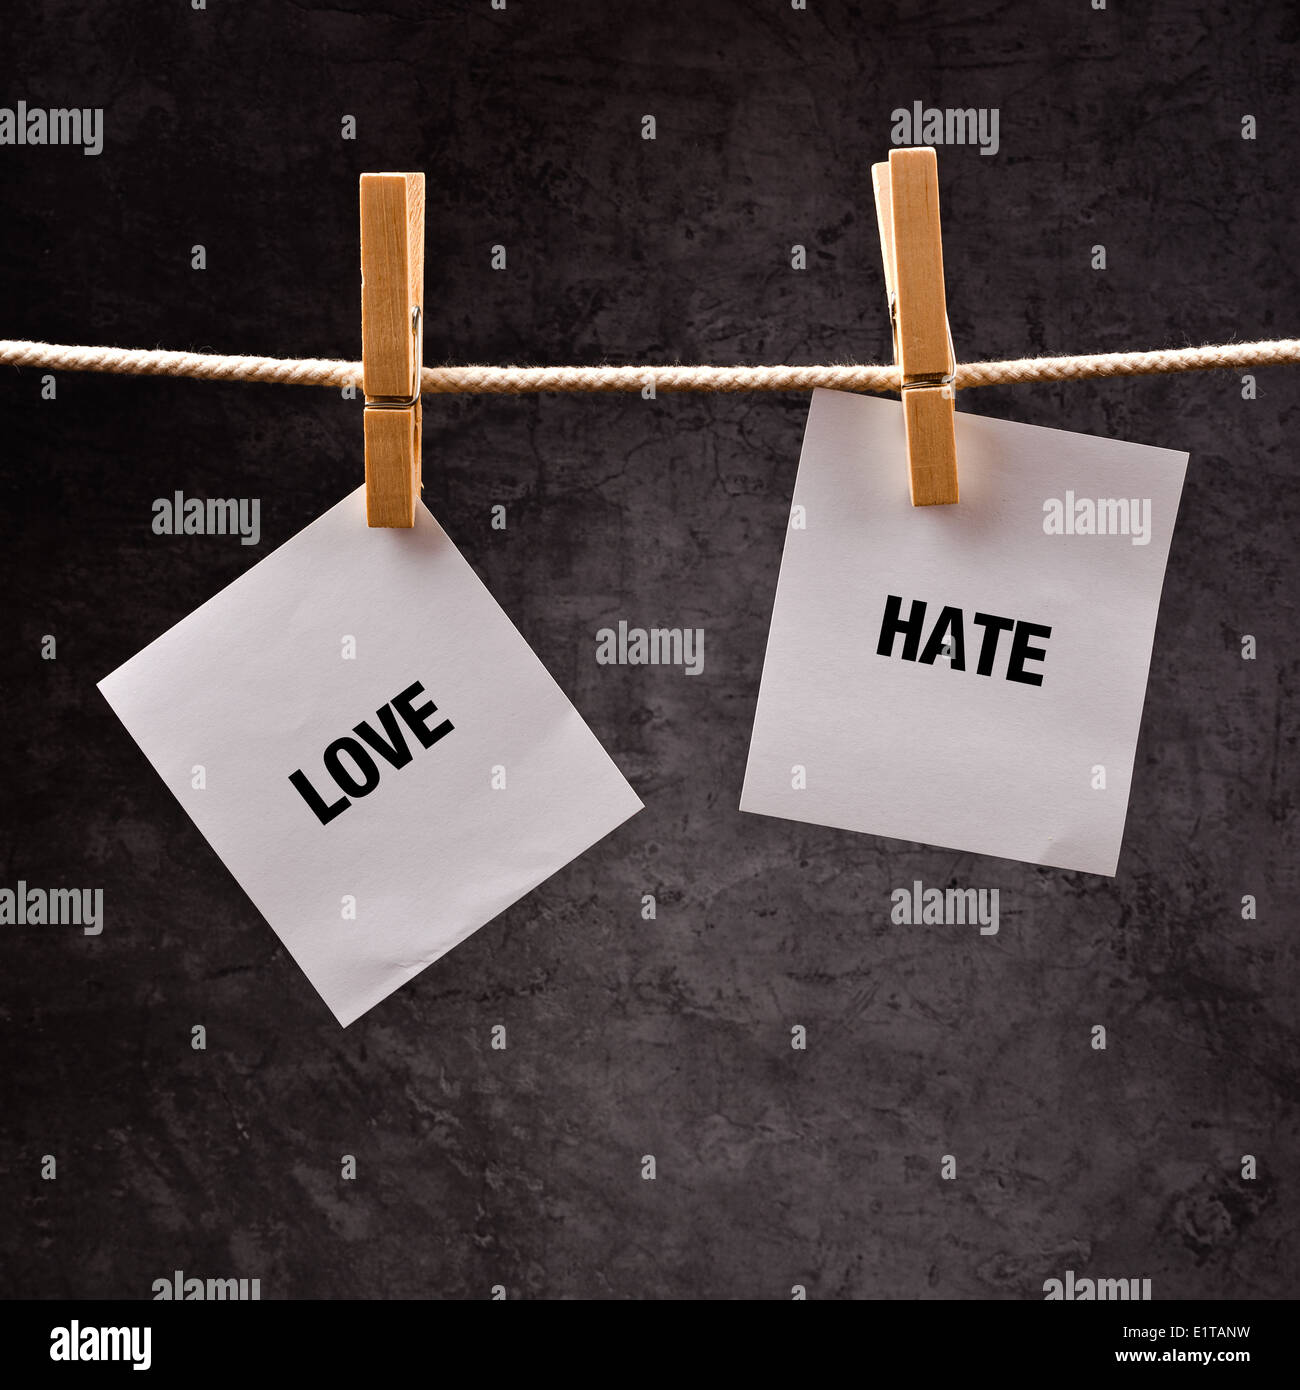 Love or hate conceptual image. Choose between loving and hating, words printed on hote paper attached to clothesline. - Stock Image